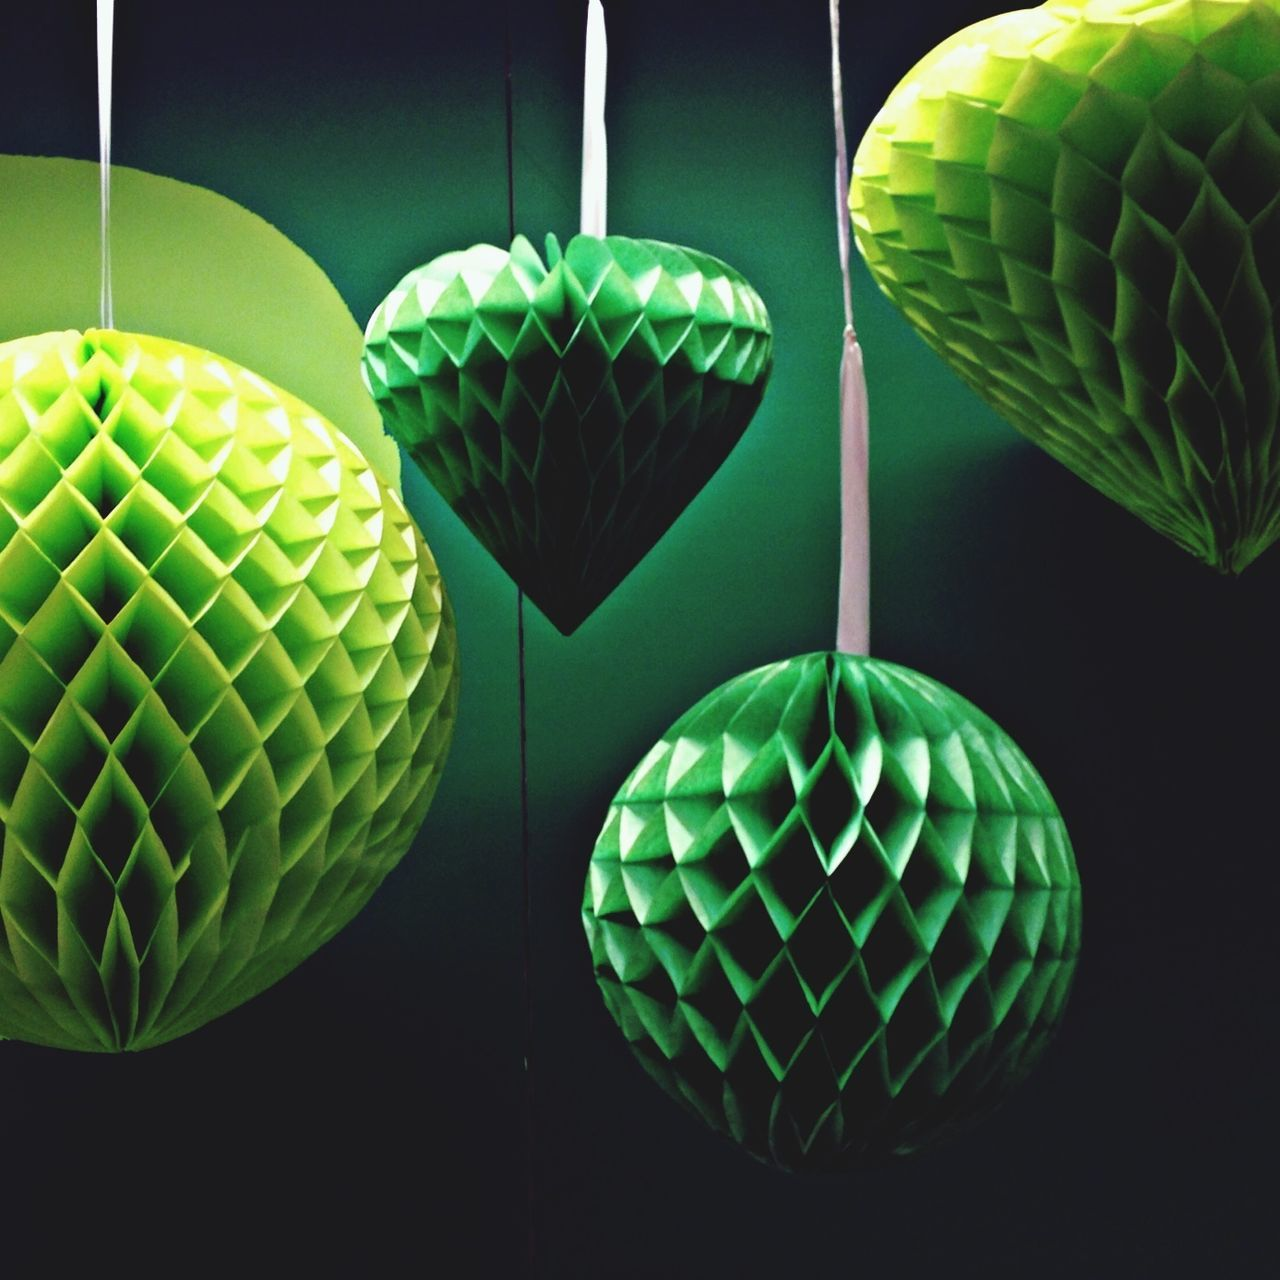 Close-up of green hanging lights against green background